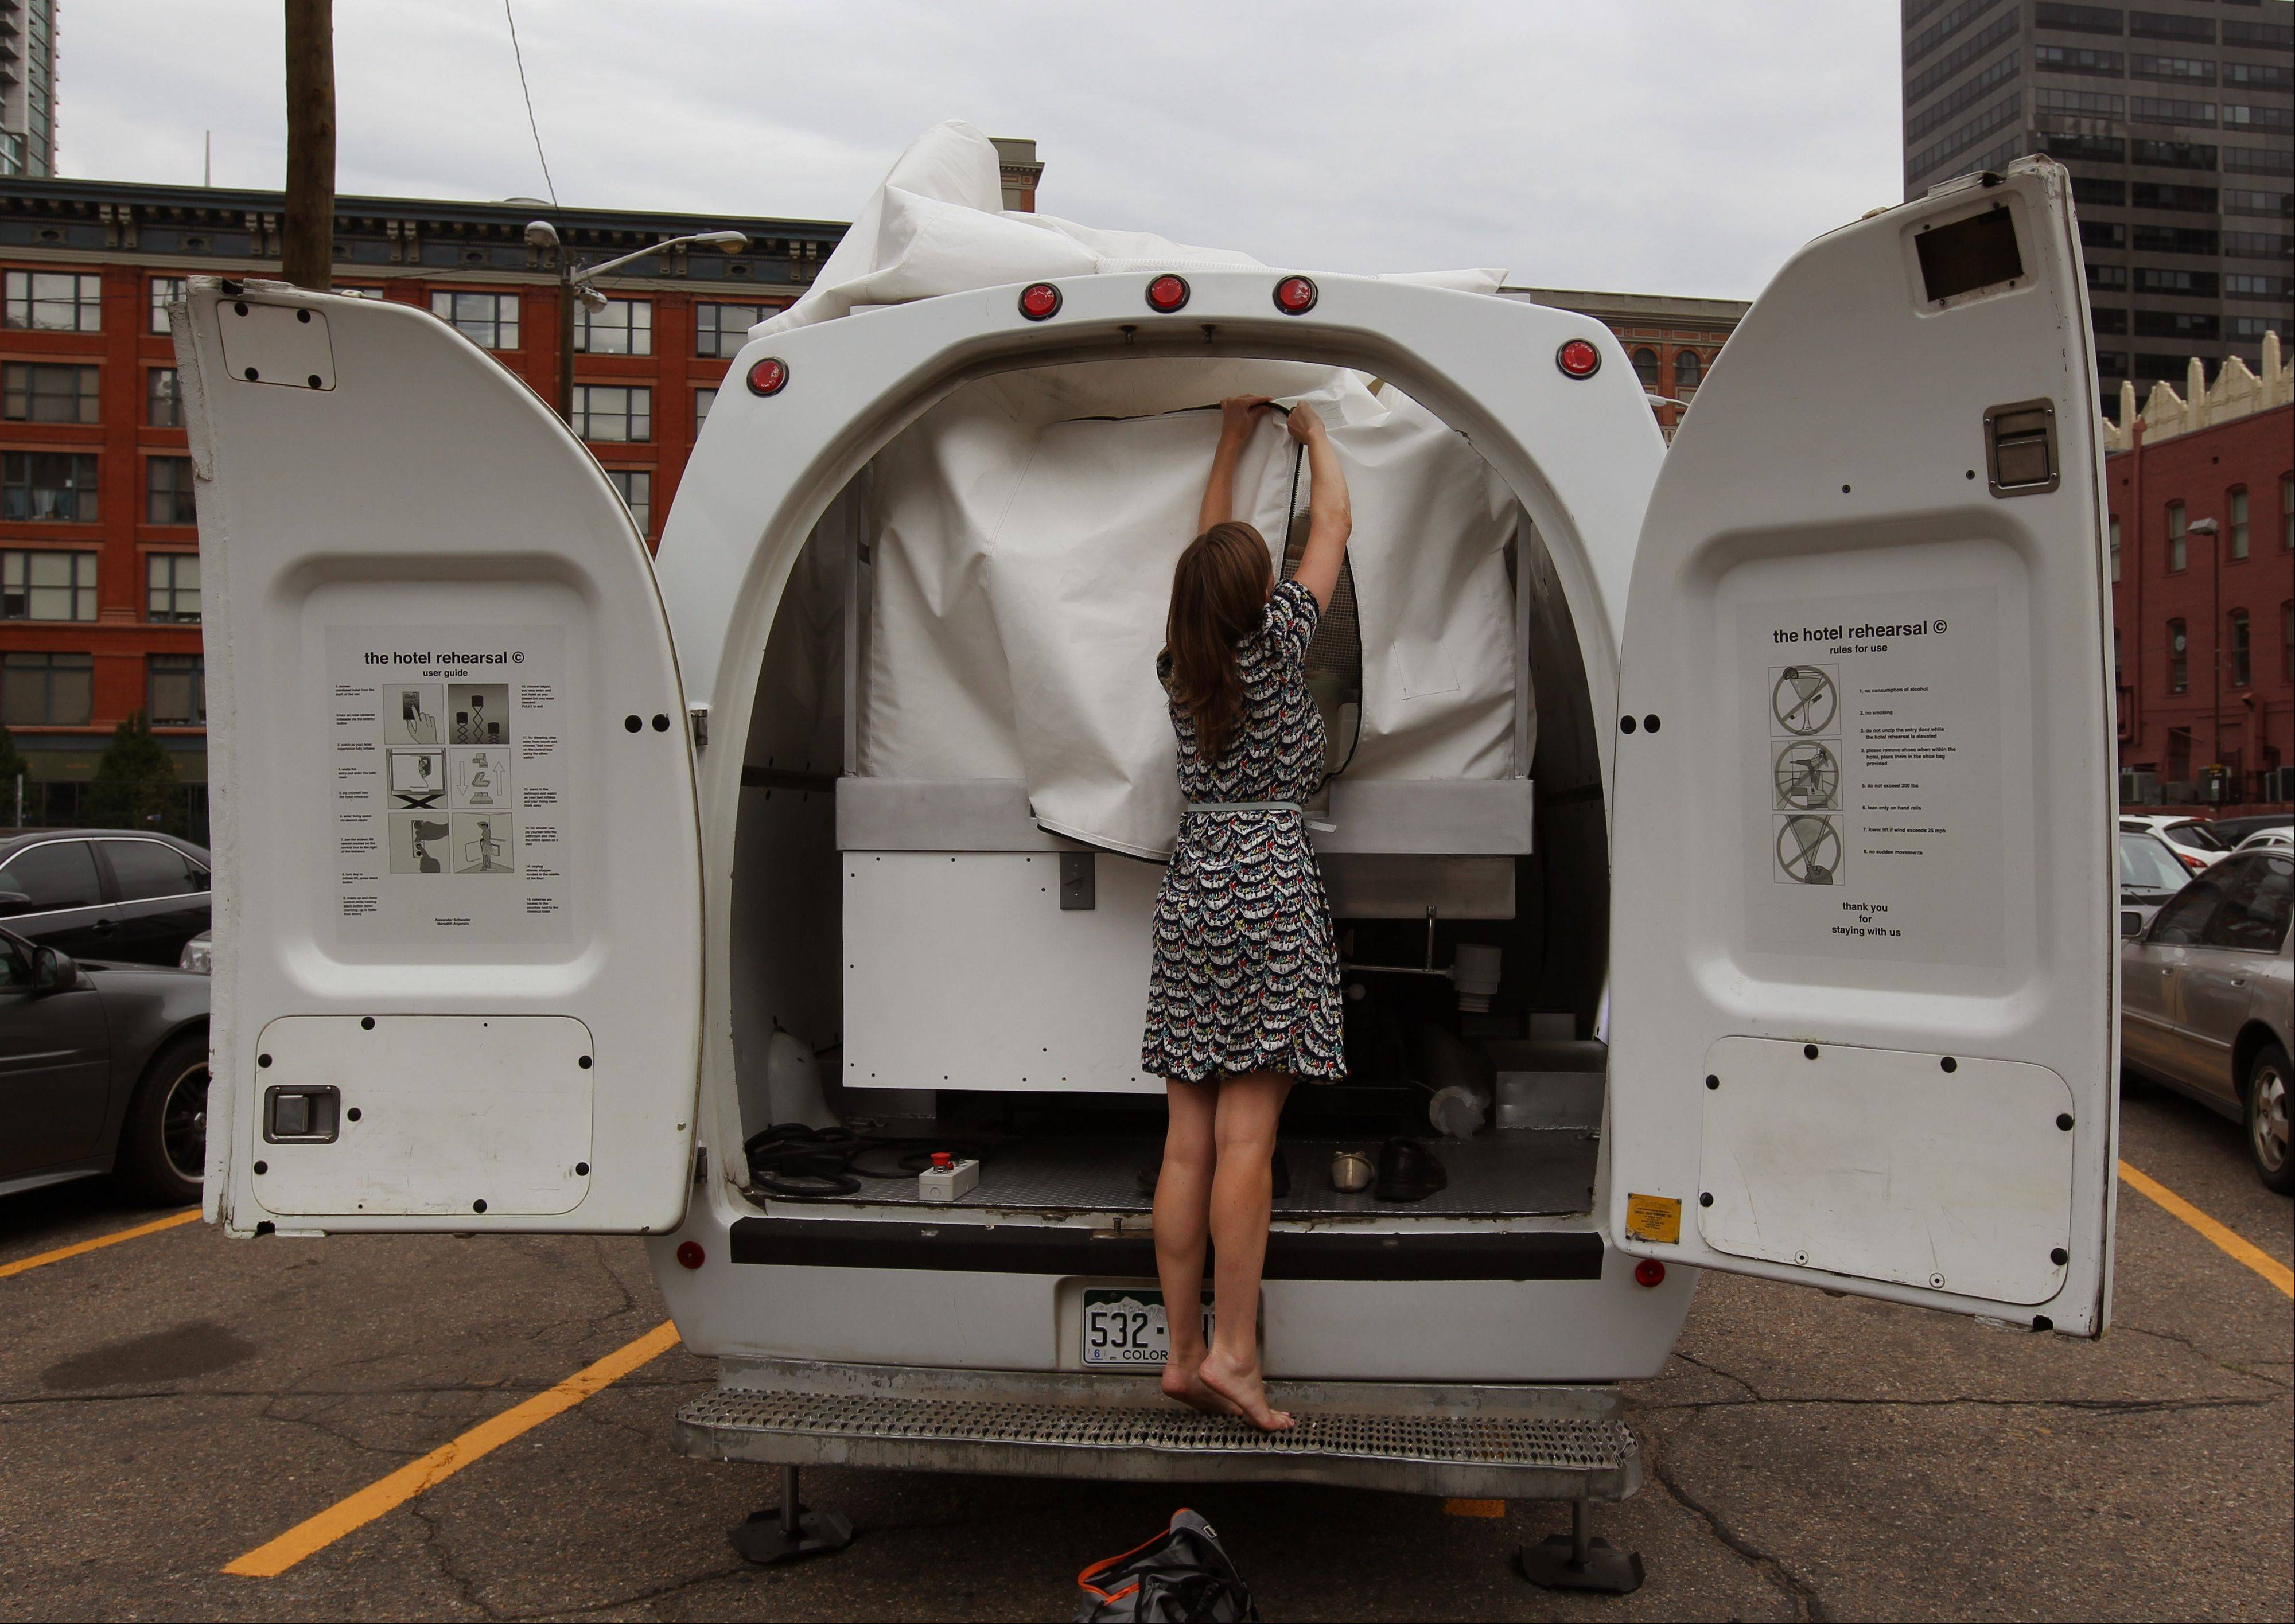 Amelia Langer, an assistant curator of Draft Urbanism, the art exhibition of the 2013 Biennial of the Americas, unzips the opening to a hotel room made of aluminum and inflated vinyl capable of being held aloft by a van-mounted scissor lift during a promotional display in a parking lot in downtown Denver.